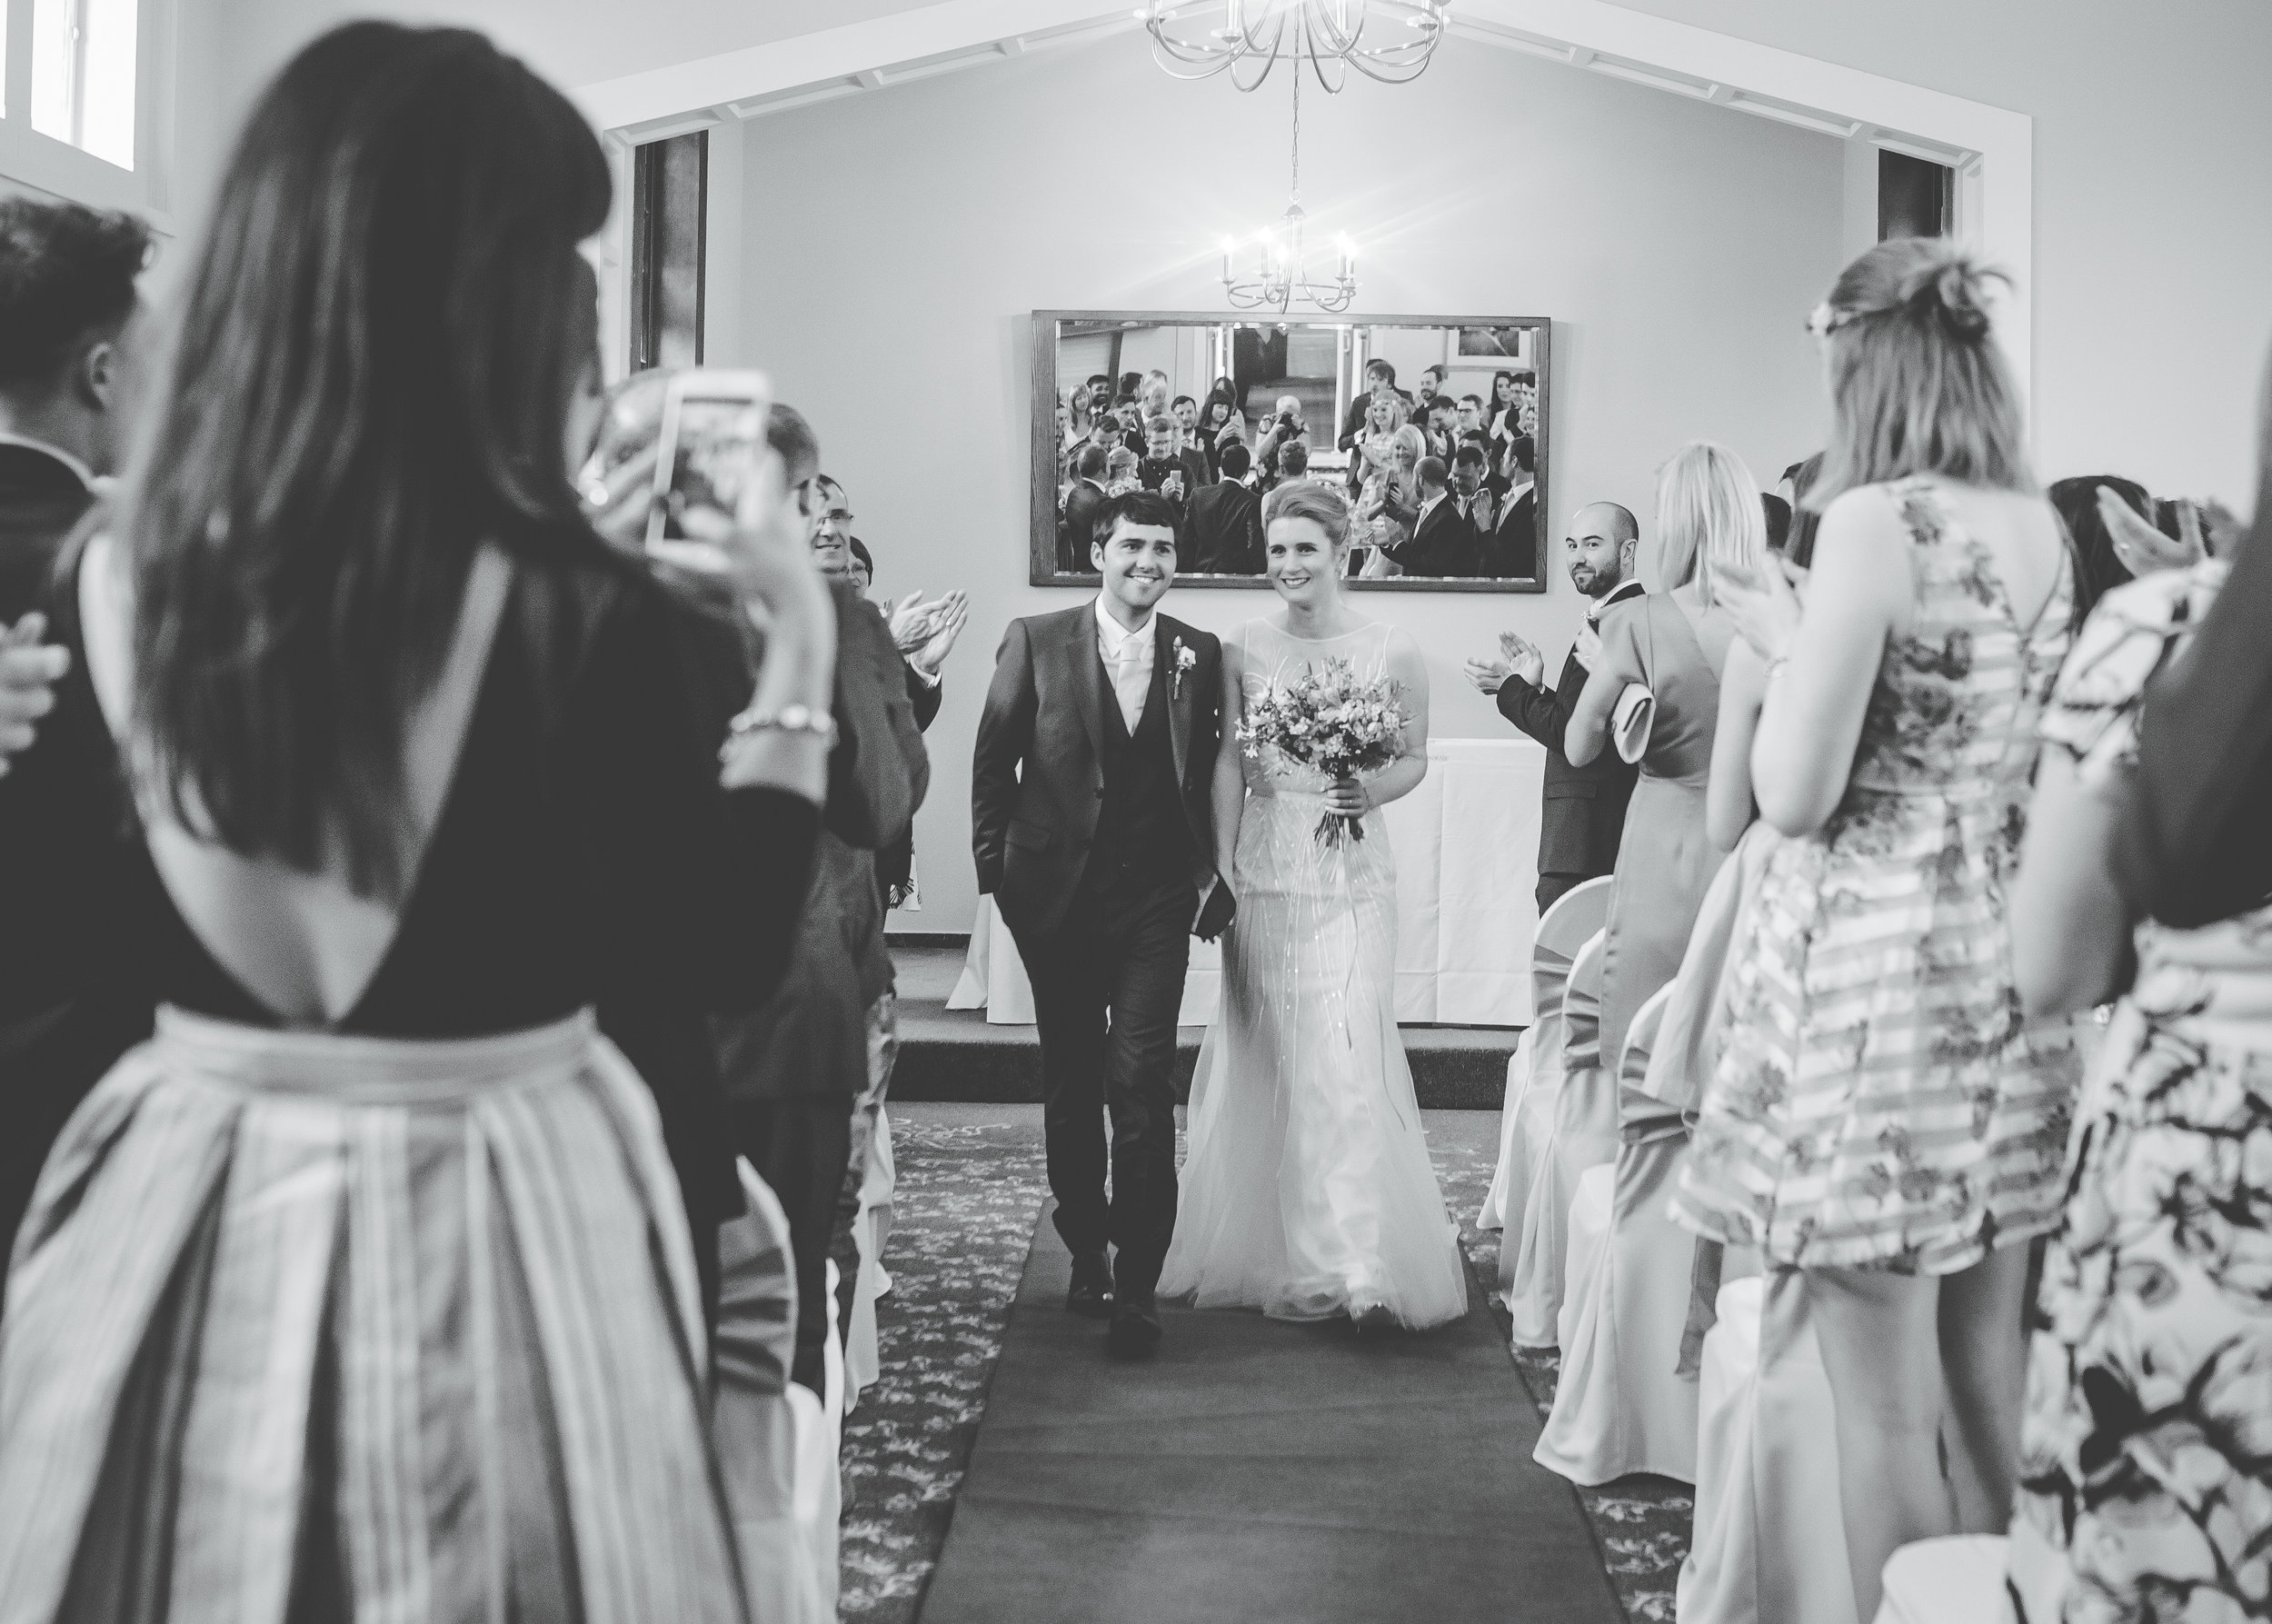 Just married - walking down the aisle